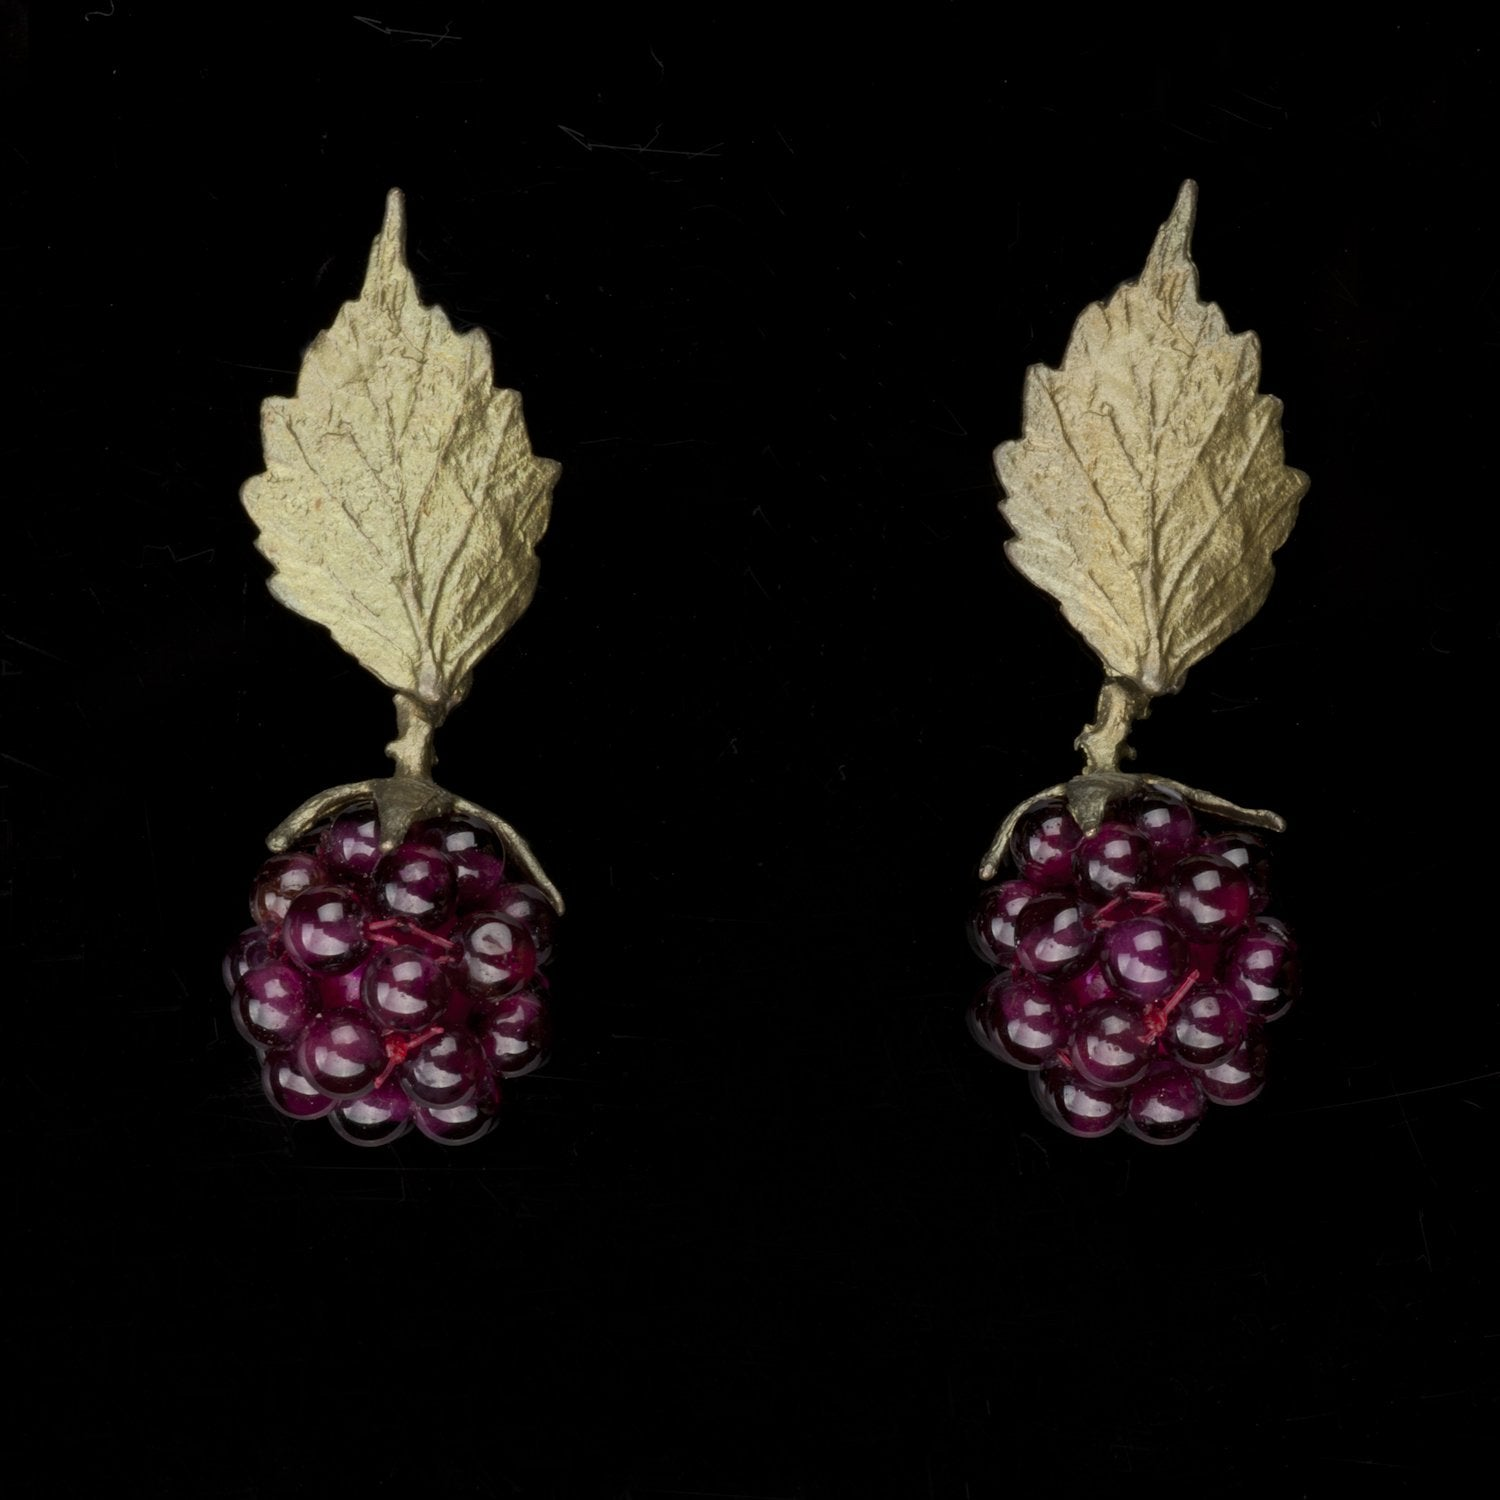 Raspberry Earrings - Post Leaf